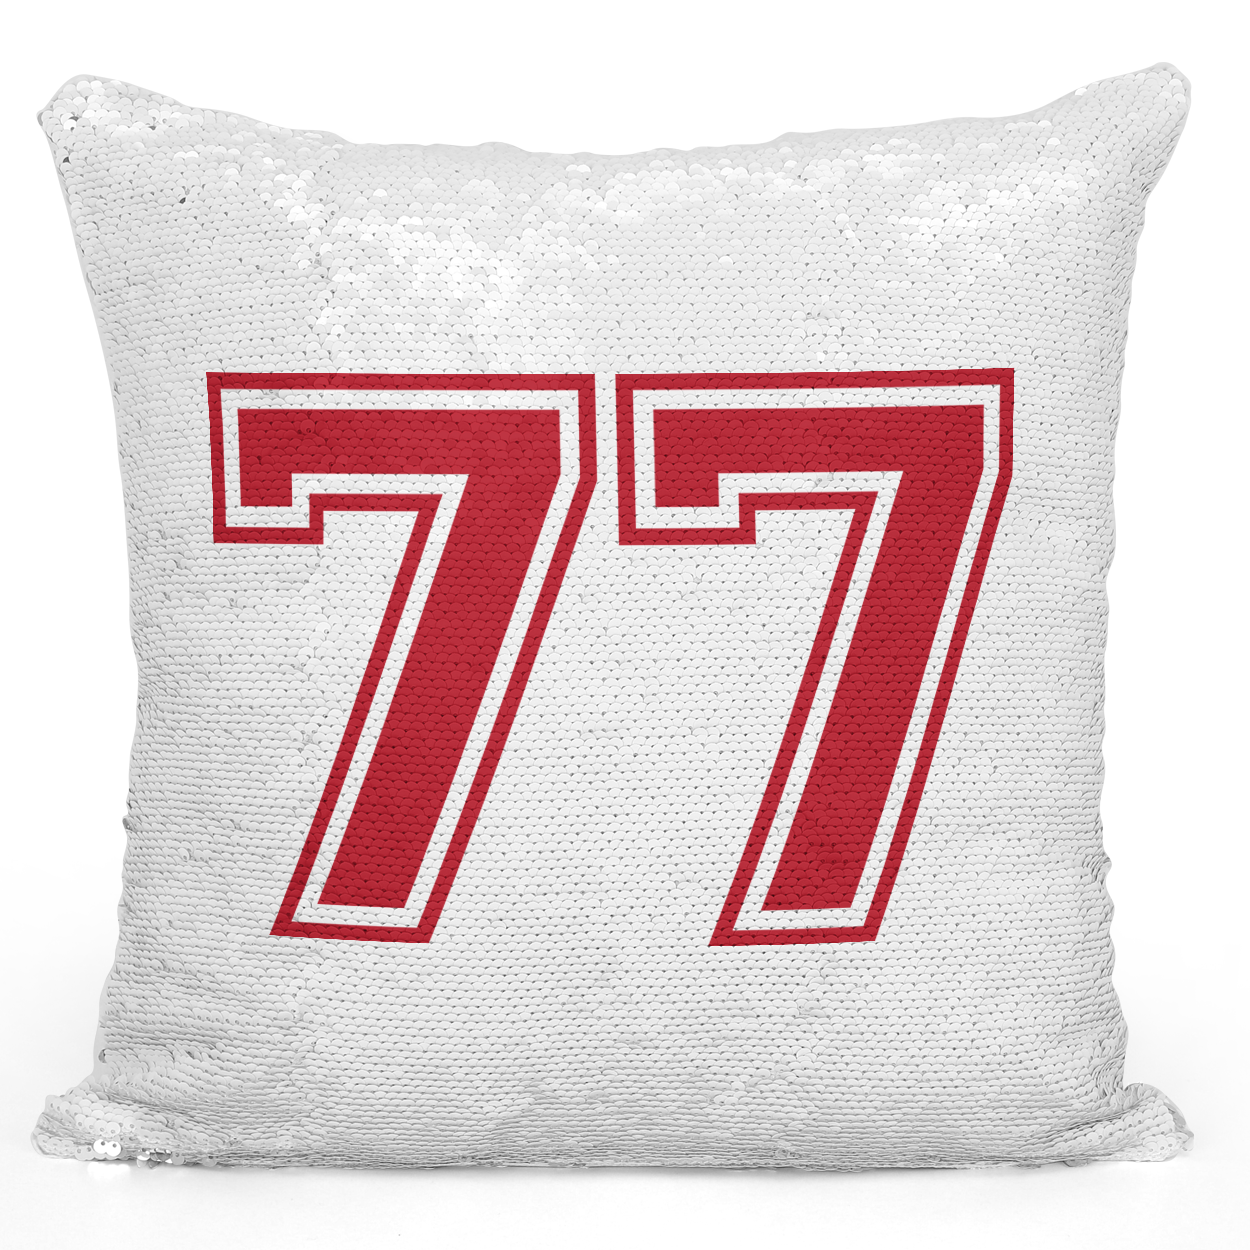 Sequin Pillow Magic Mermaid Throw Pillow Sports Team Player Number 77 Red - Durable White 16 x 16 inch Square Livingroom Sofa Couch Pillow Loud Universe